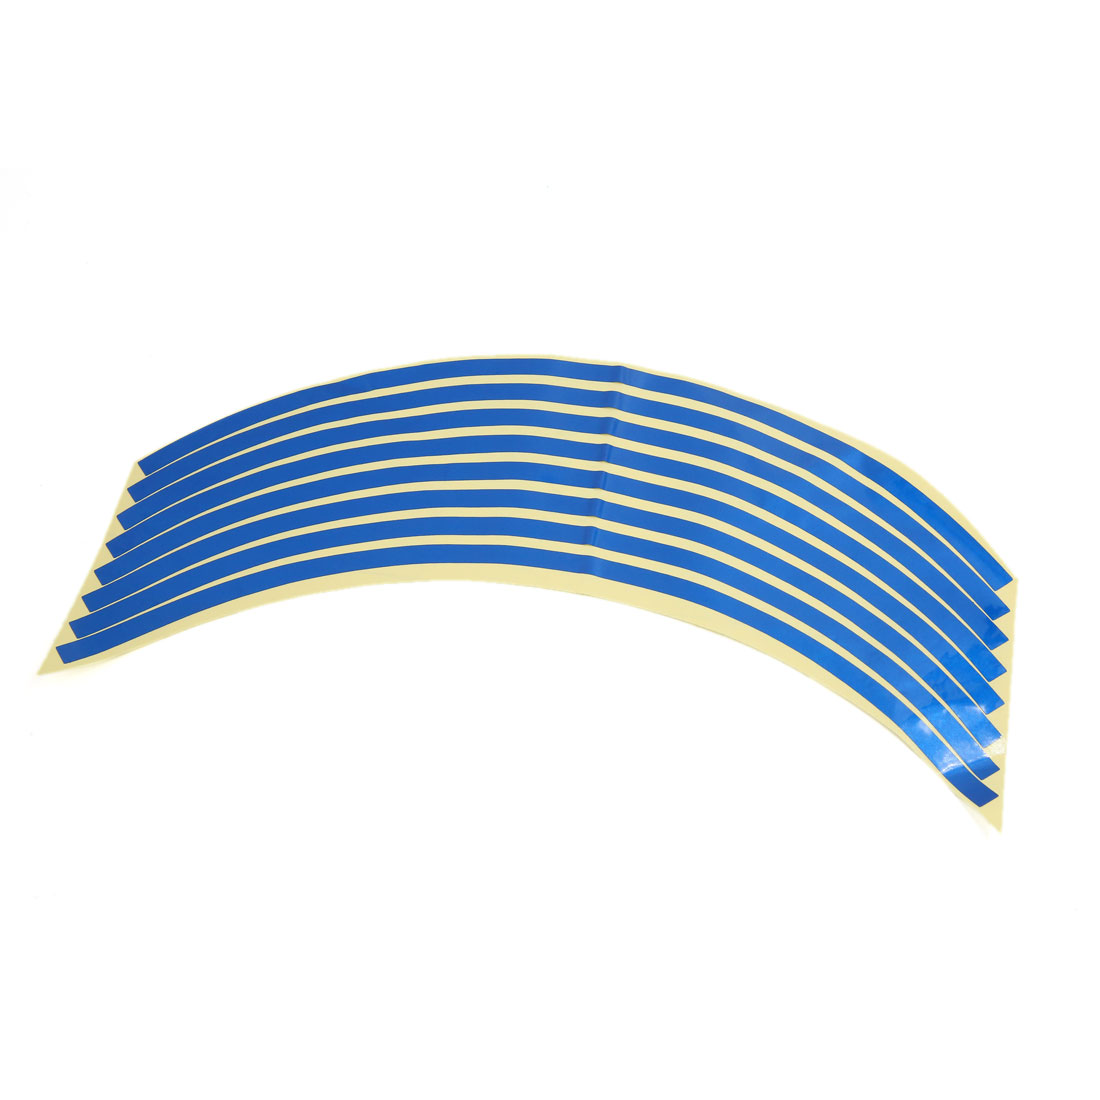 4pcs Blue Vinyl Decal Strips Self Adhesives Vehicle Car Sticker Lines Sheet